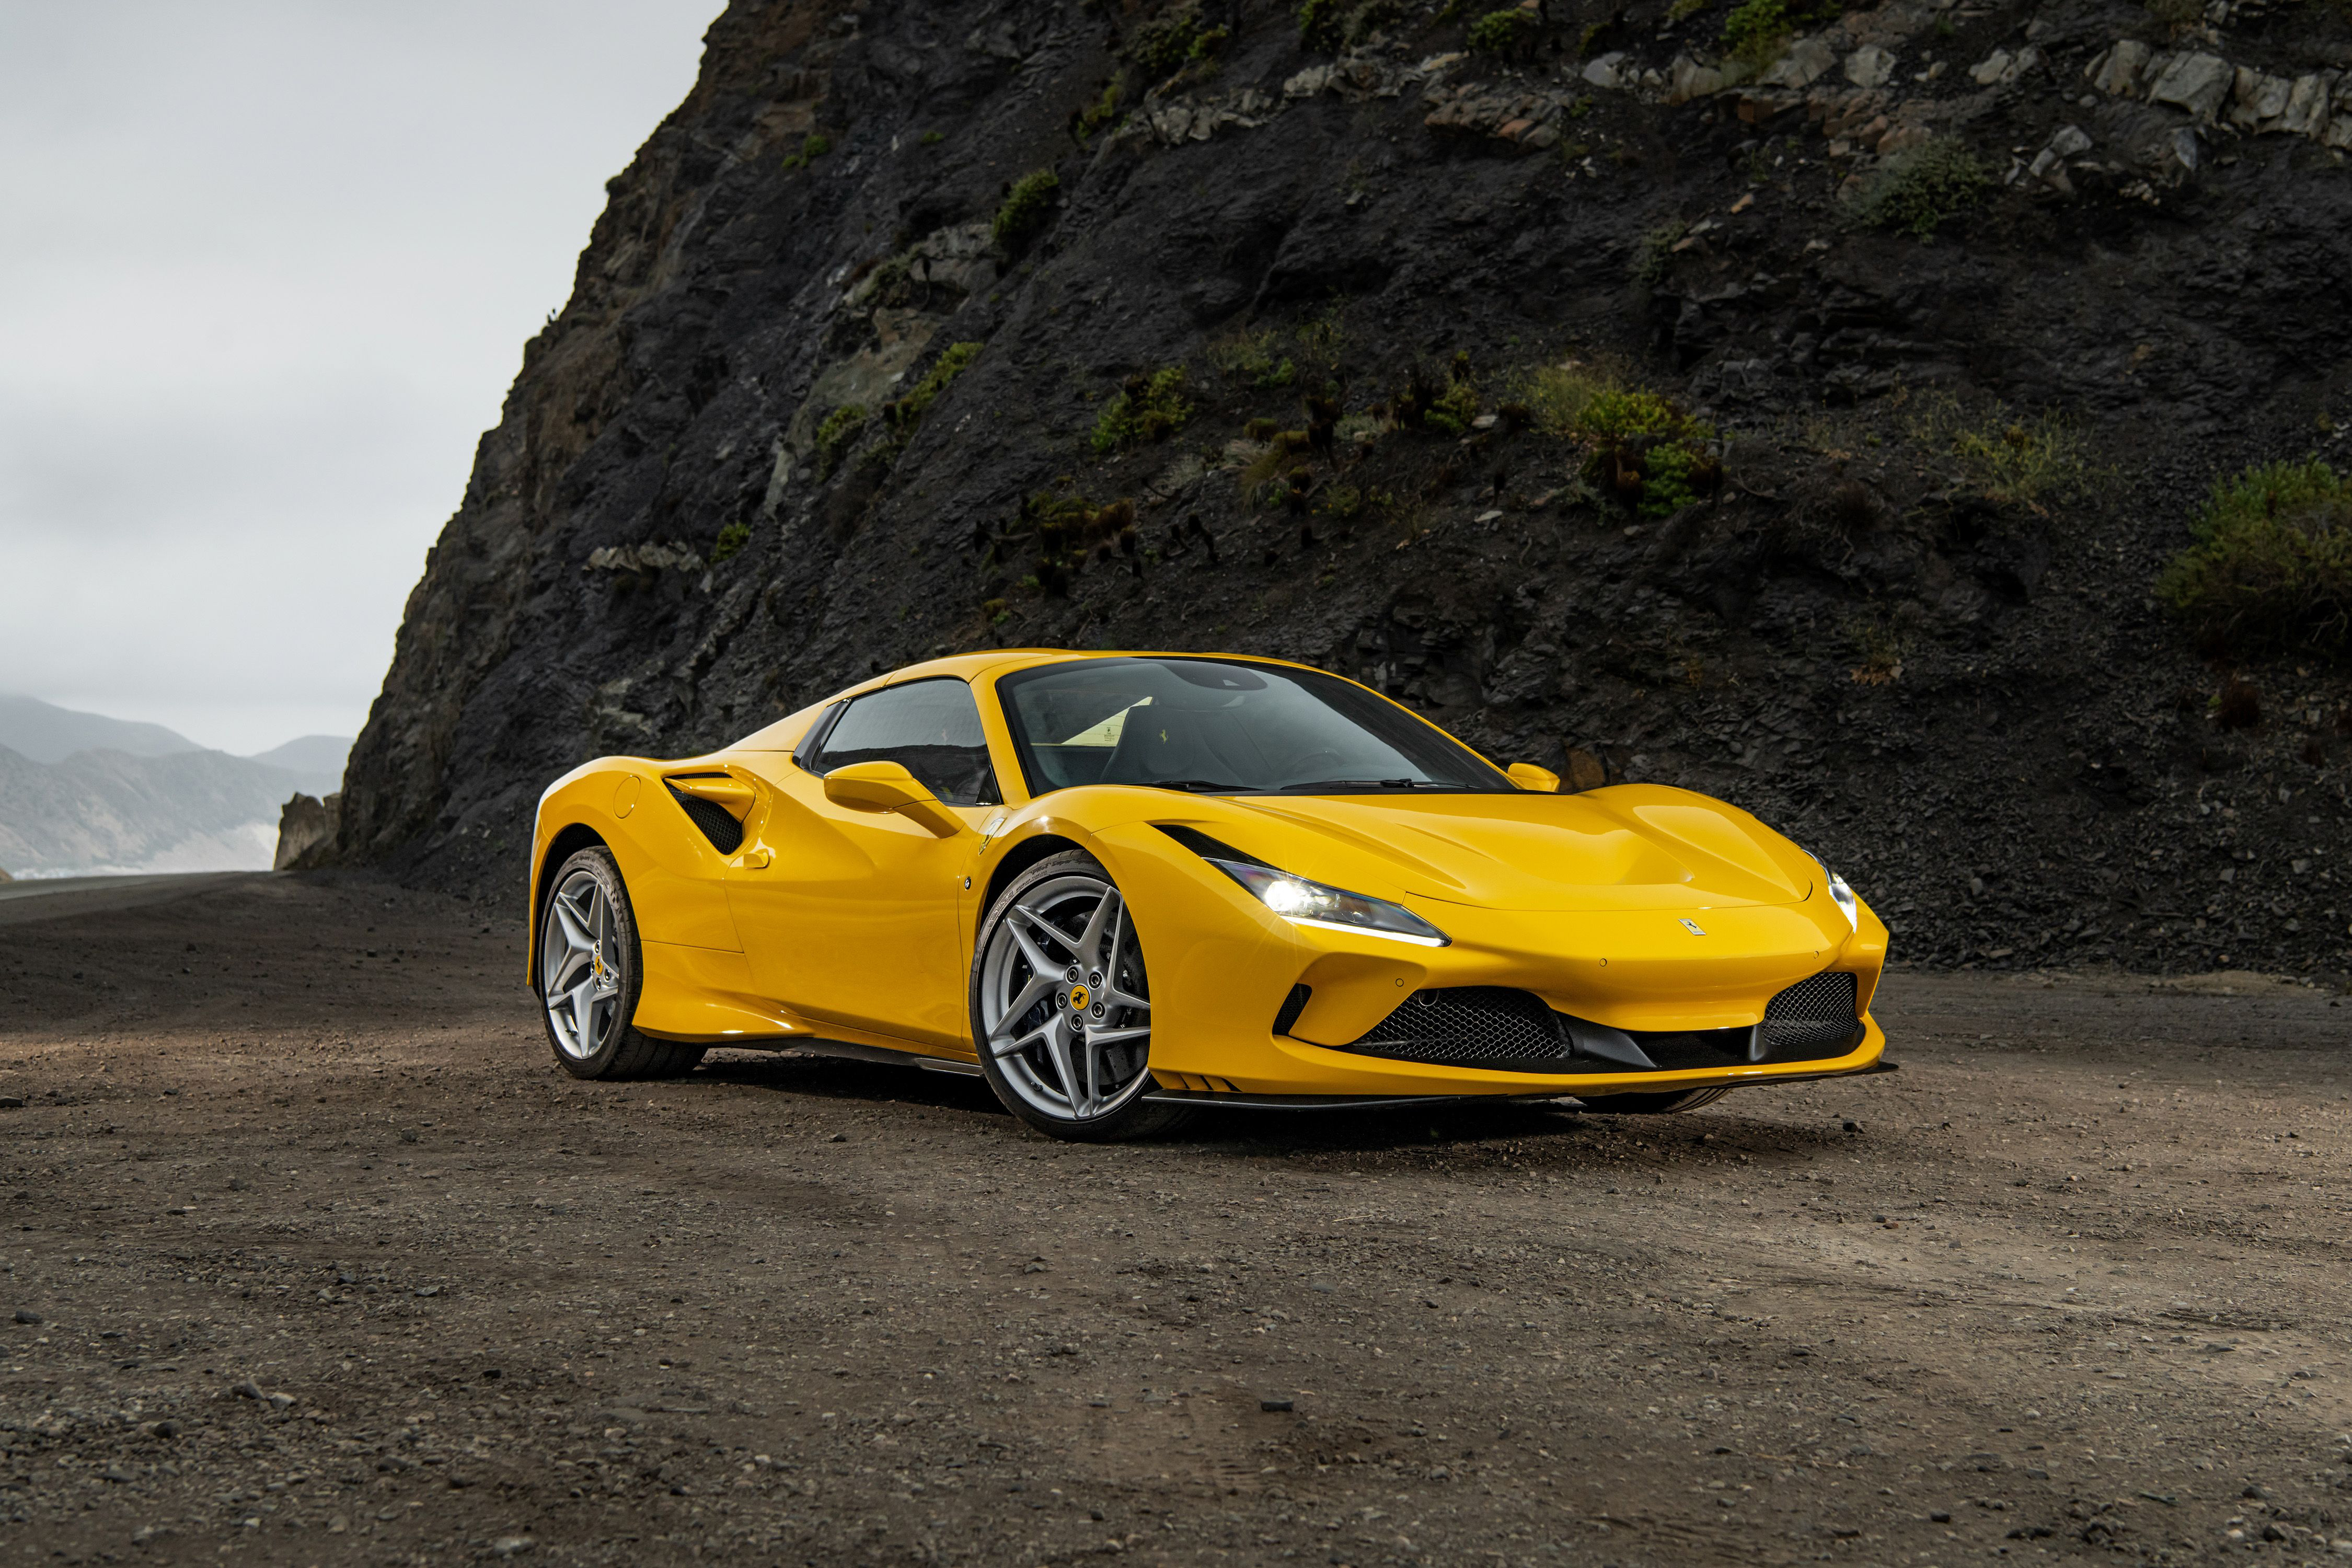 1366x768 5k Ferrari F8 Spider 2020 1366x768 Resolution Hd 4k Wallpapers Images Backgrounds Photos And Pictures